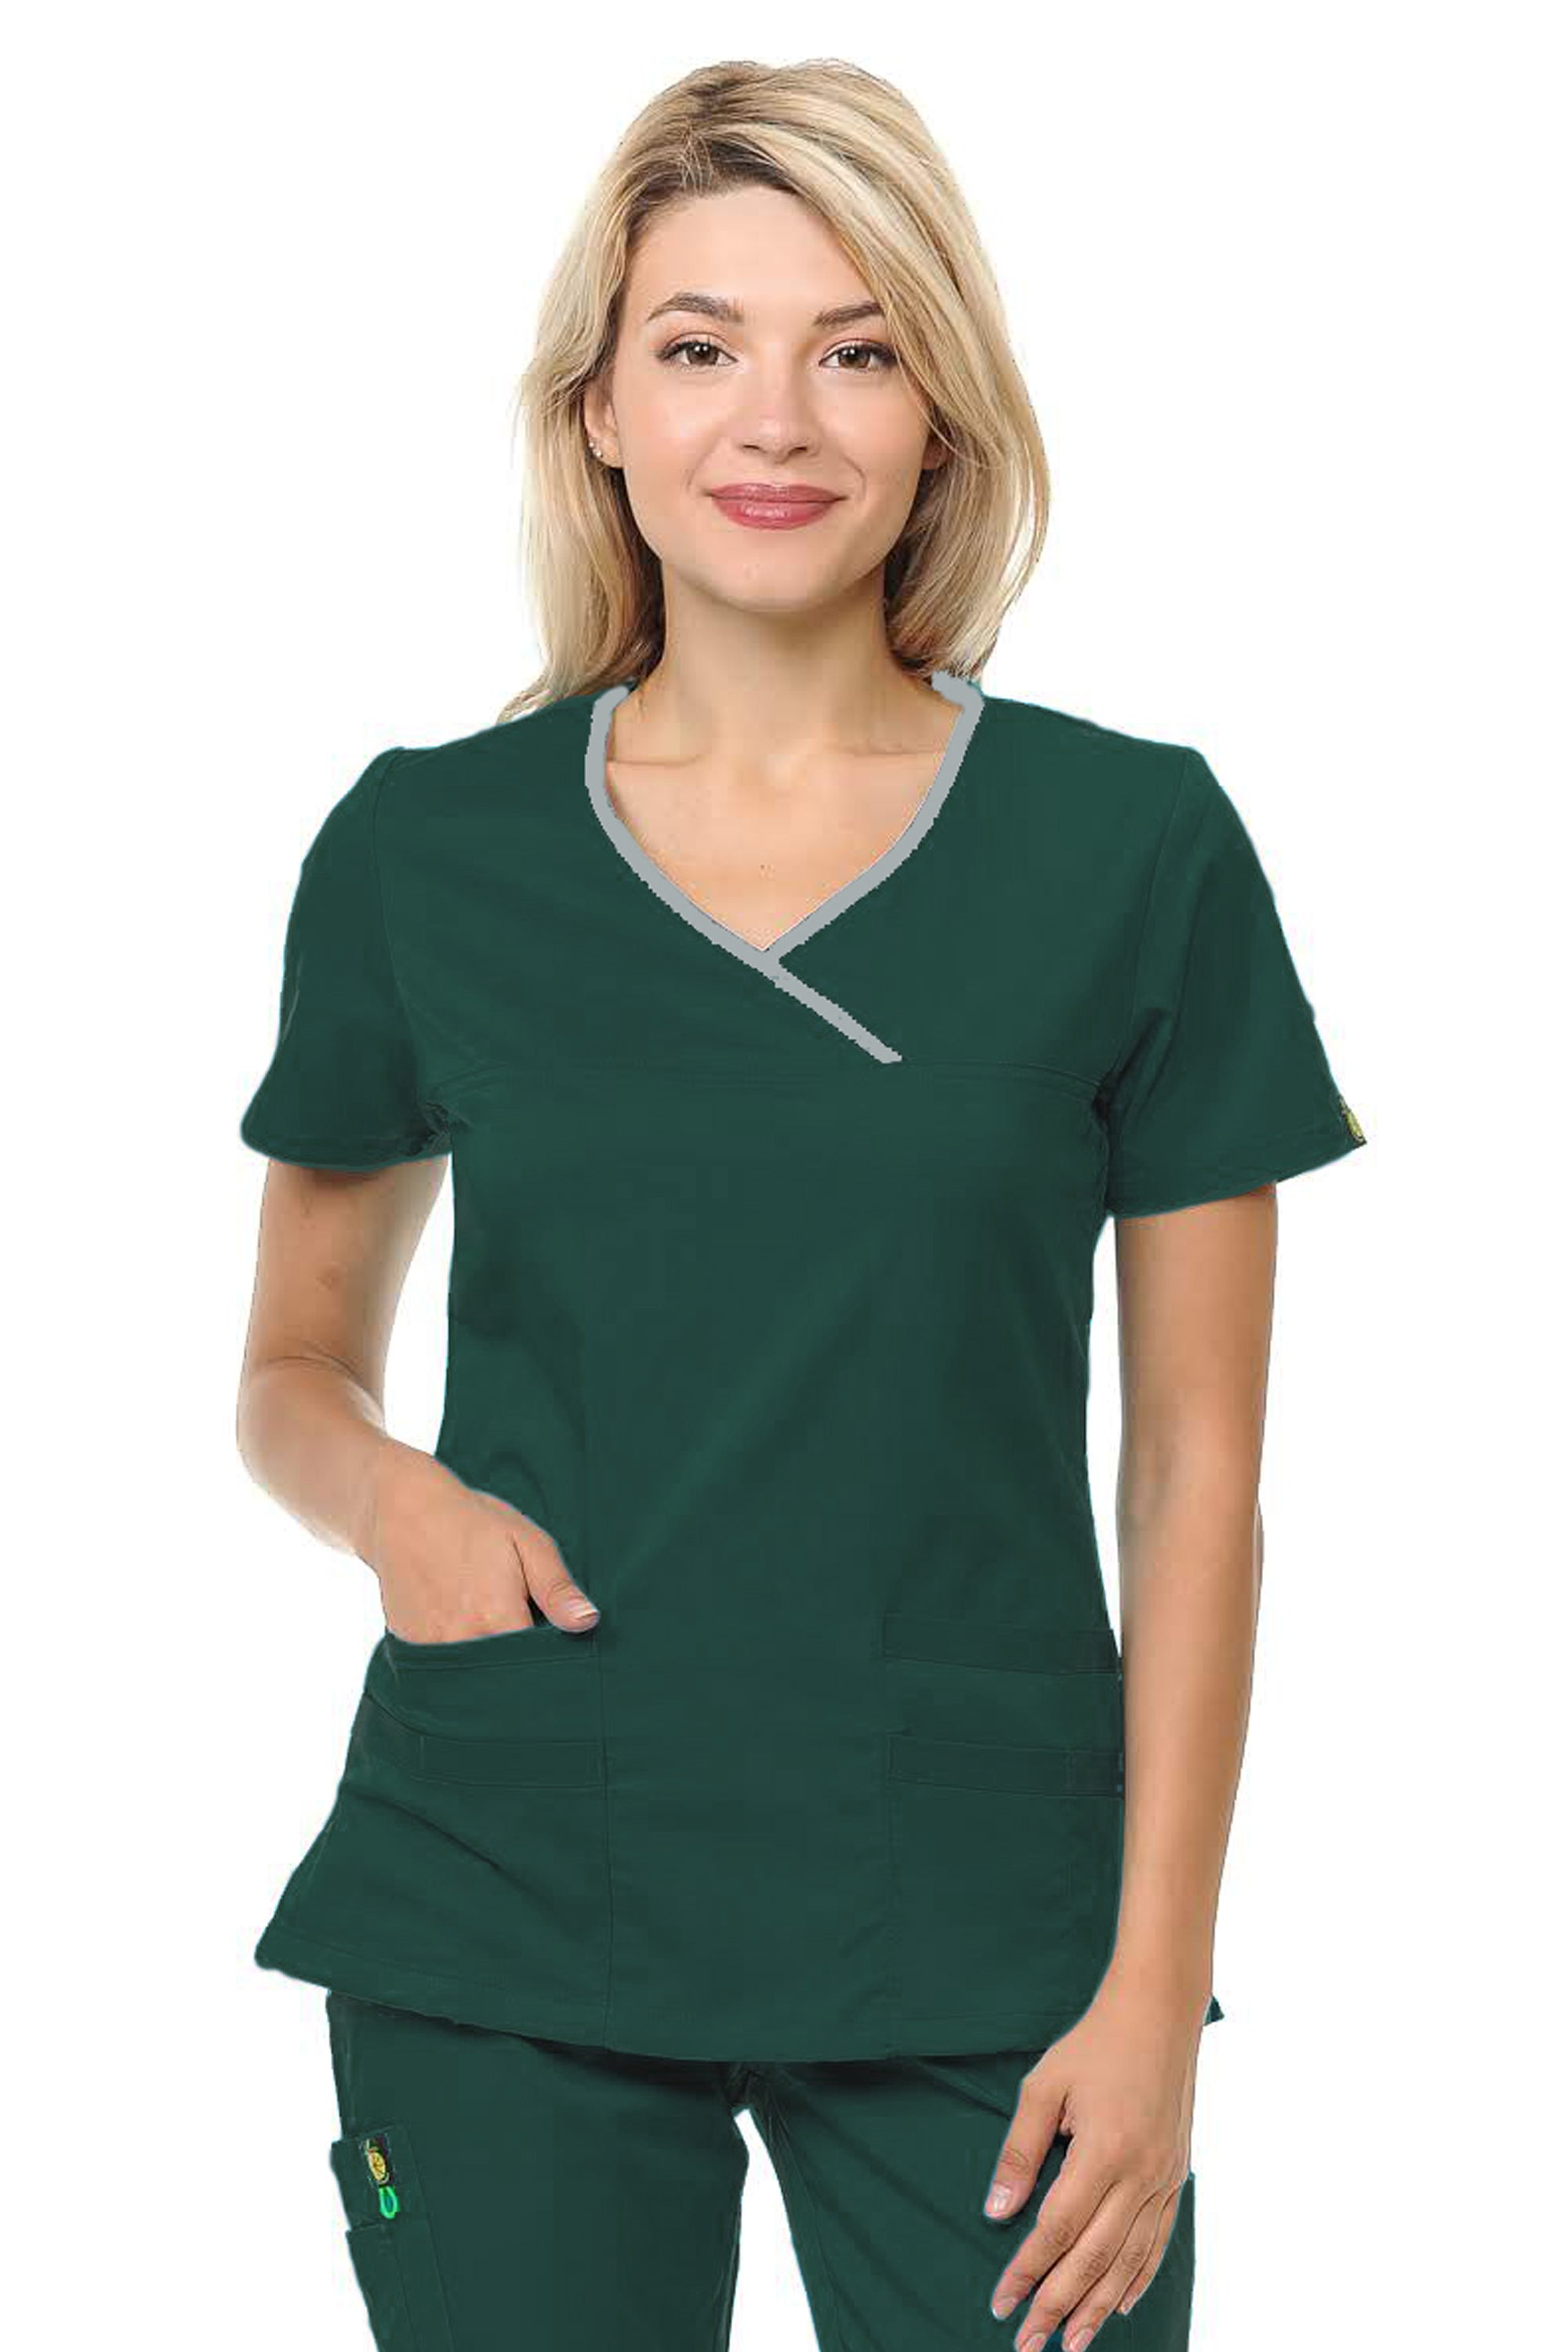 d2afe35ddf6 Woman's Polyester Rayon 2 Pocket Y-Neck Fitted Top – Platinum ...